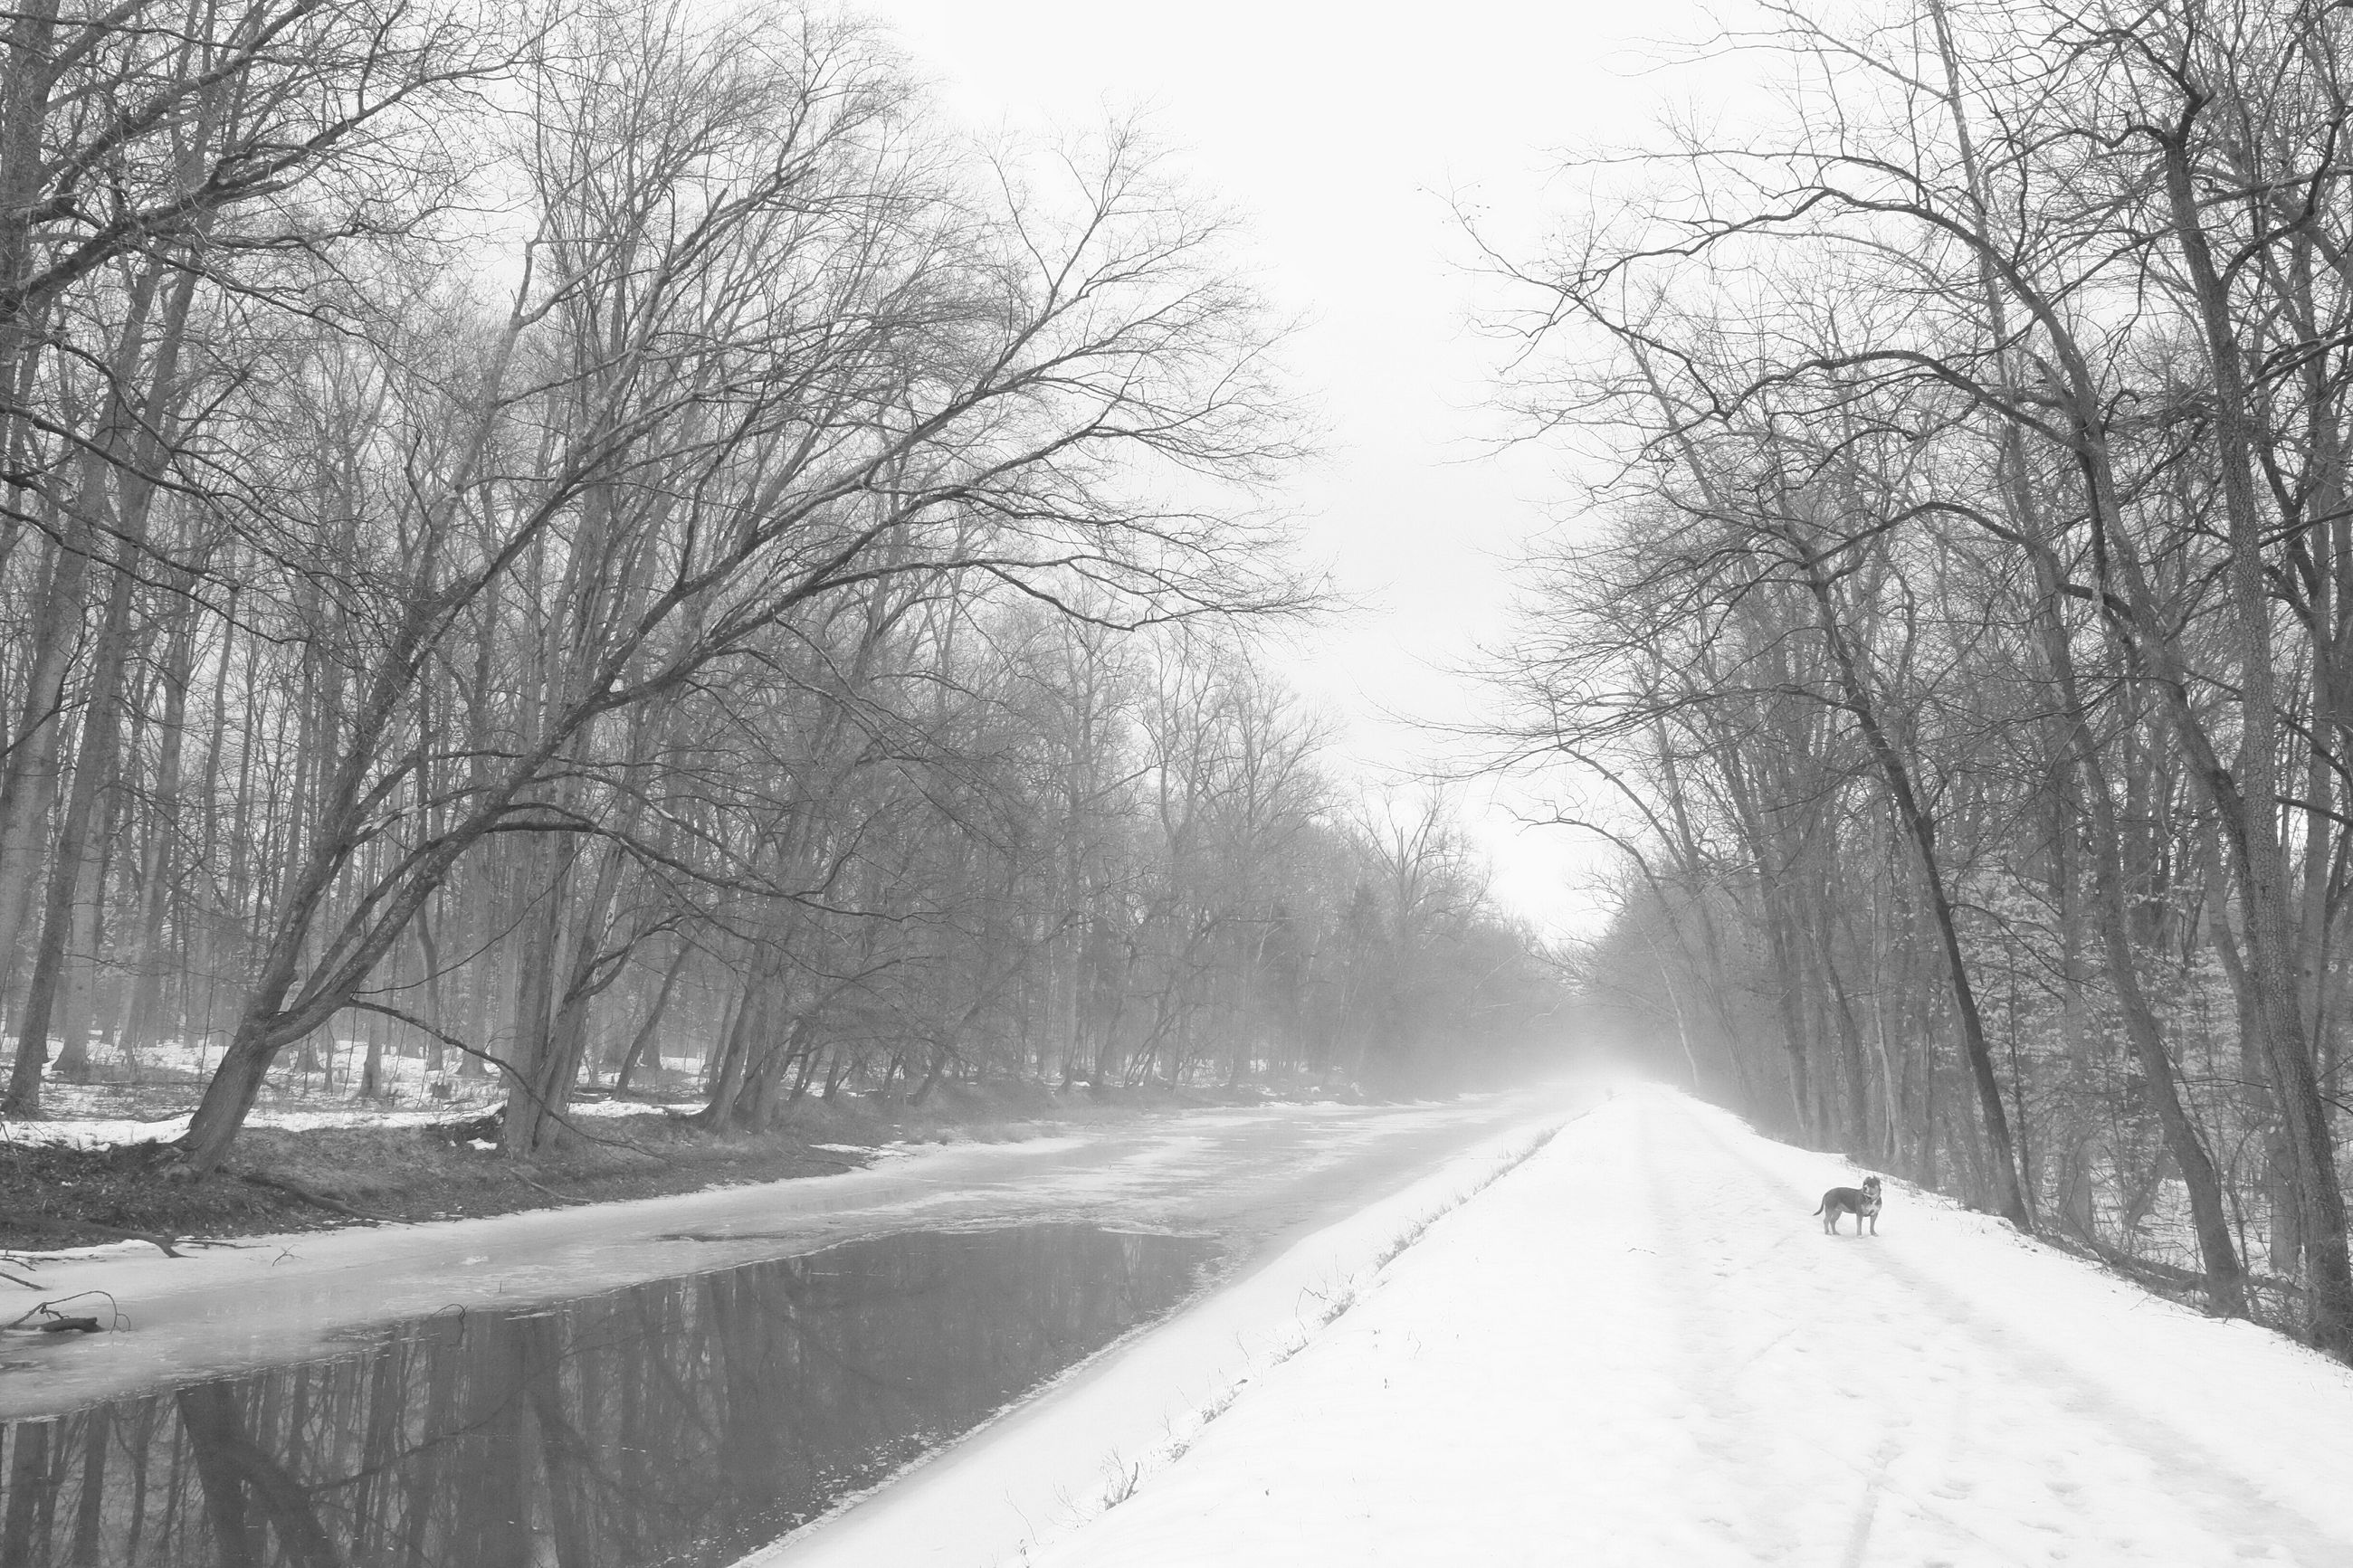 winter, snow, cold temperature, the way forward, tree, transportation, season, weather, road, diminishing perspective, bare tree, vanishing point, nature, covering, clear sky, street, frozen, branch, tranquility, tranquil scene